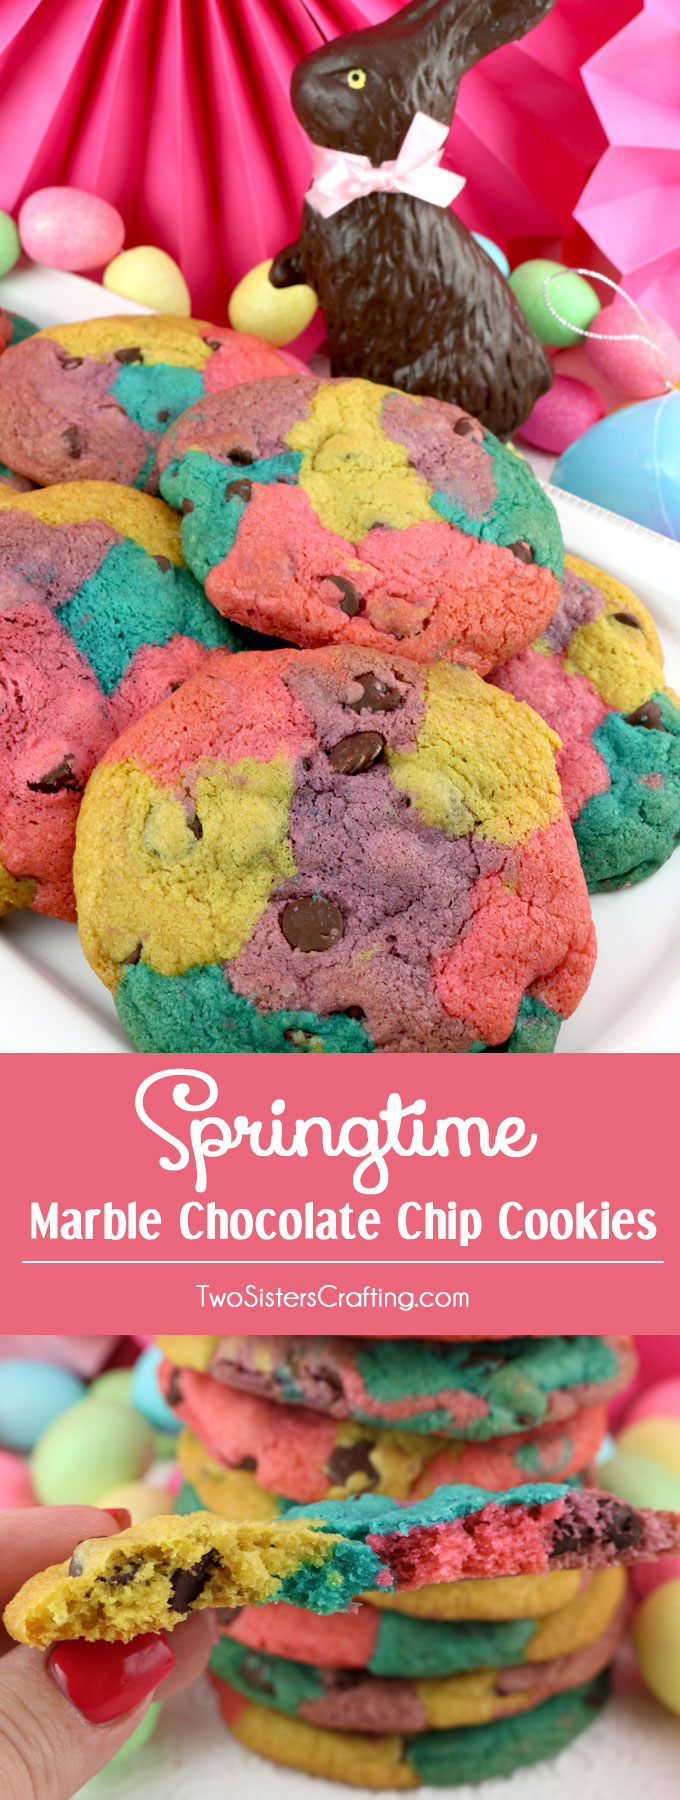 Springtime Marble Chocolate Chip Cookies Two Sisters